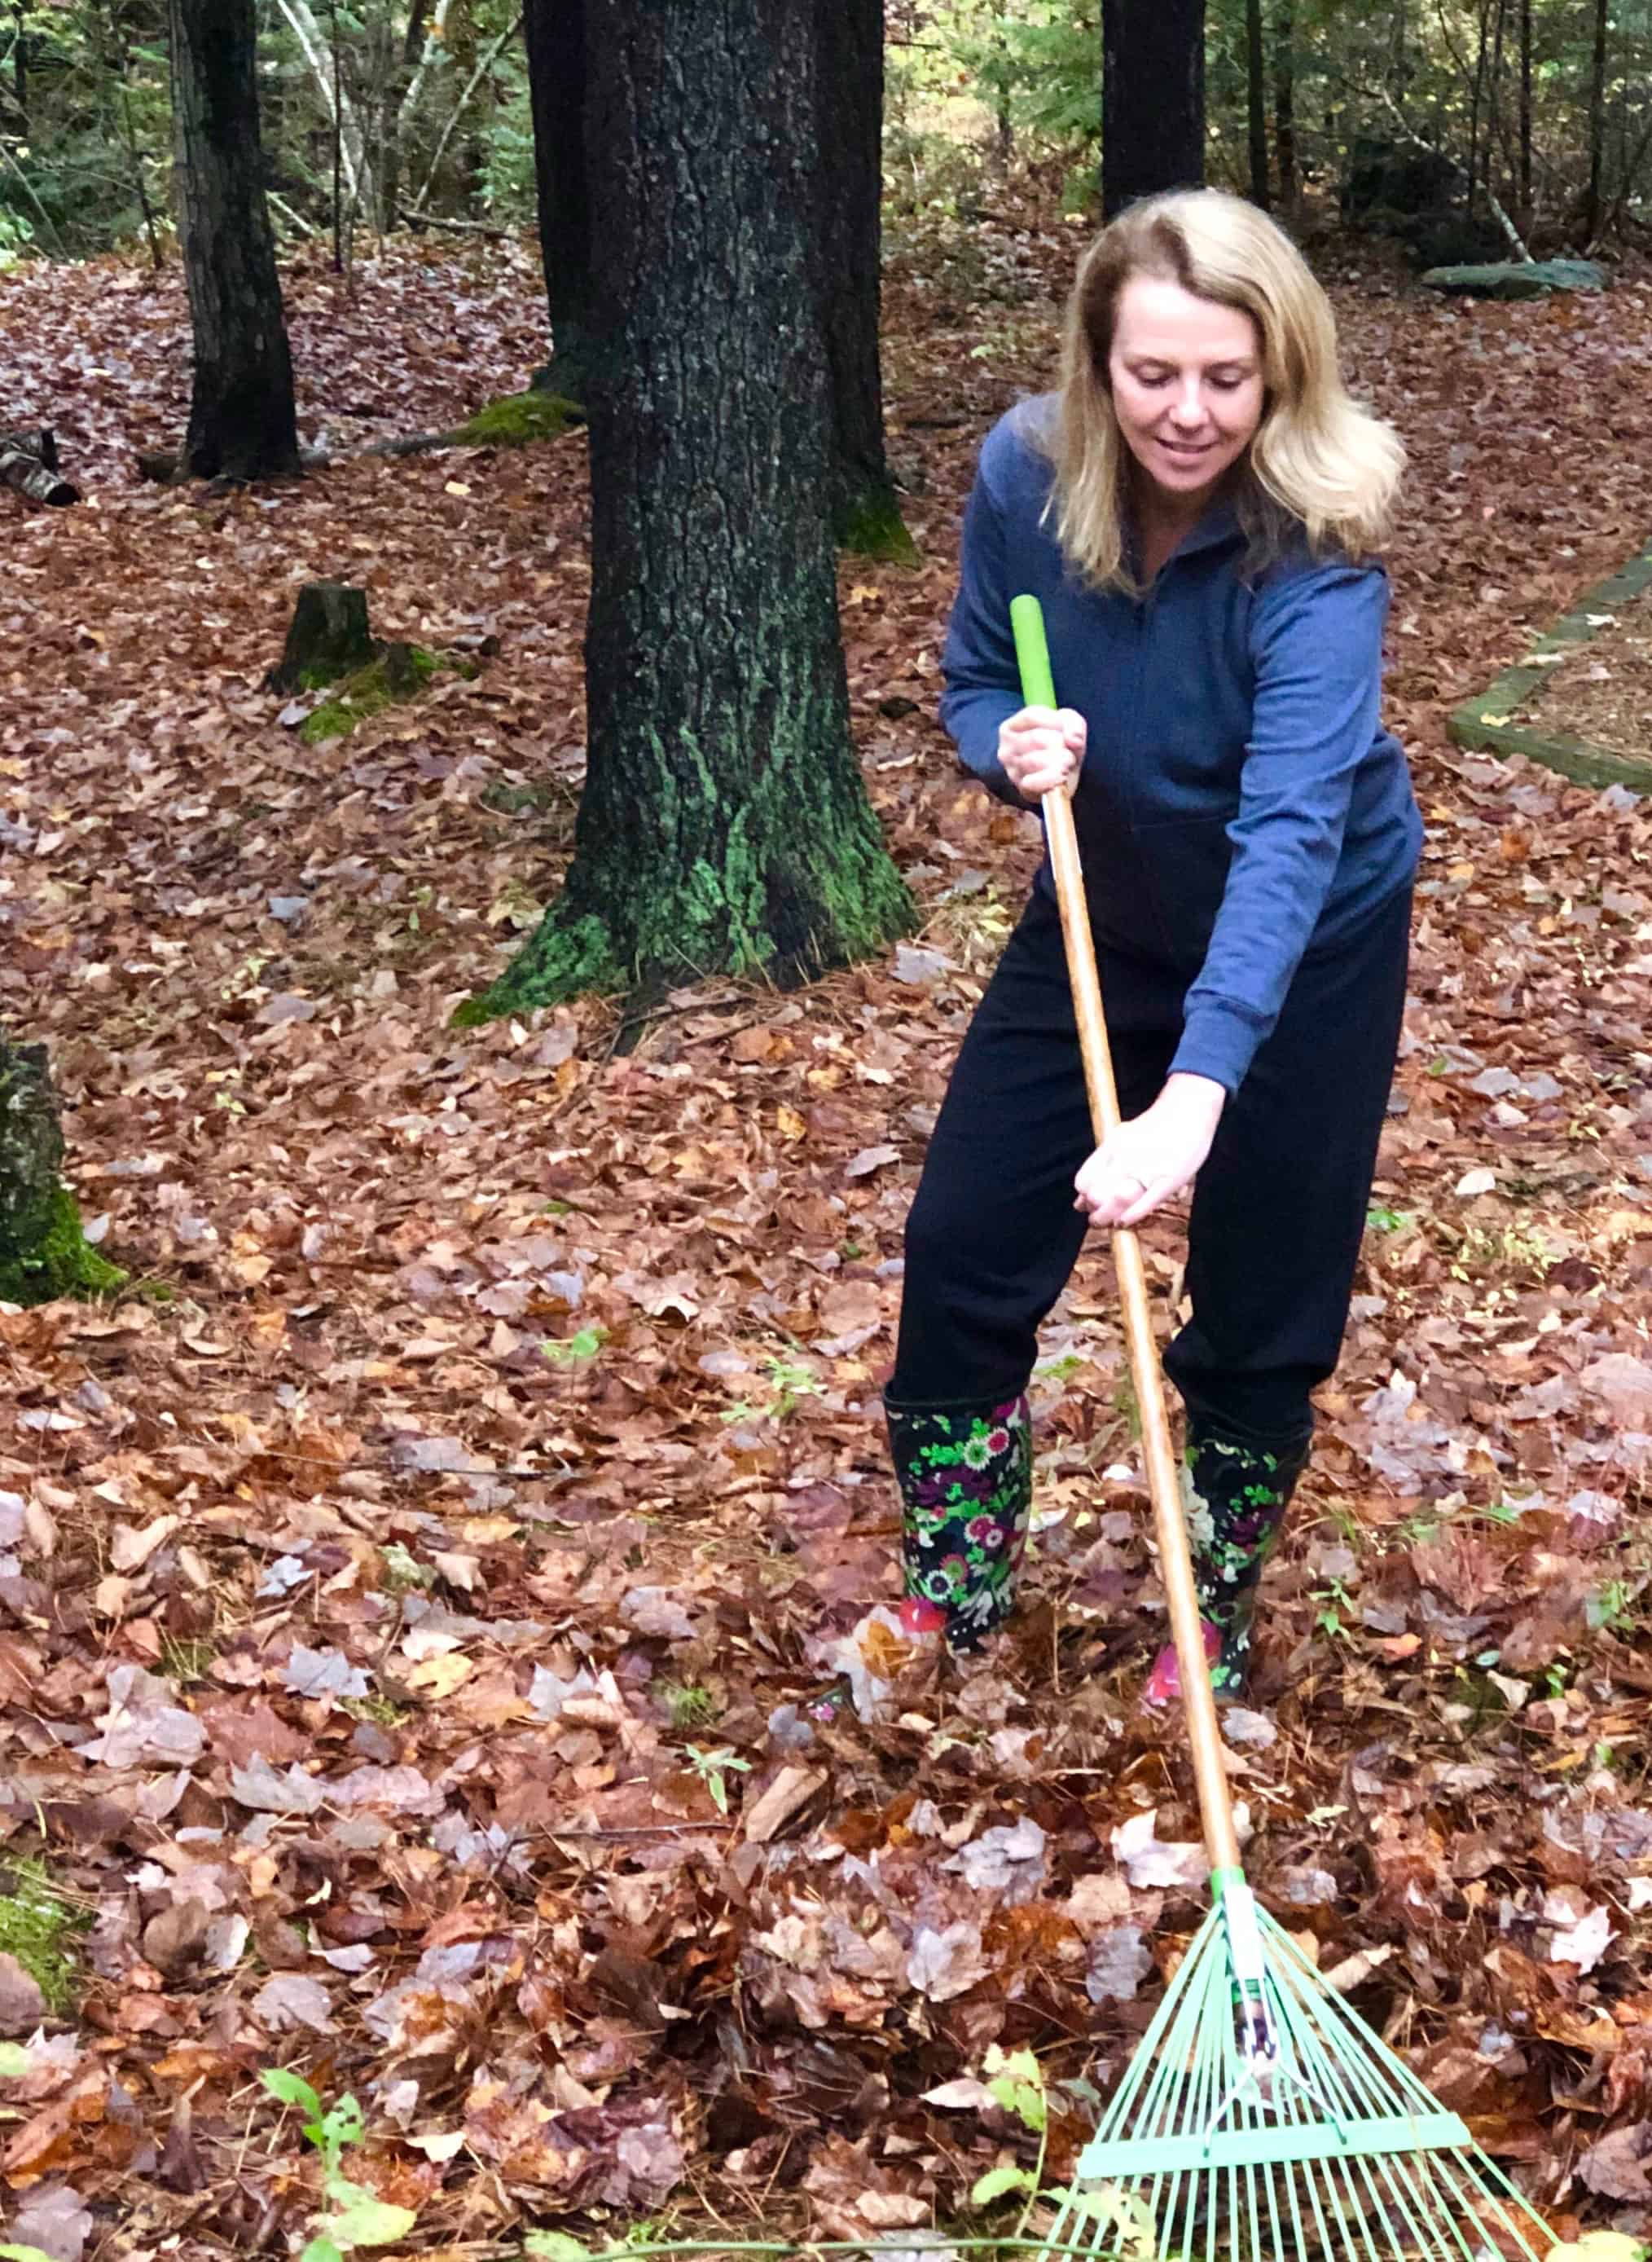 Beautiful blonde woman in sweatpants raking leaves in Maine.